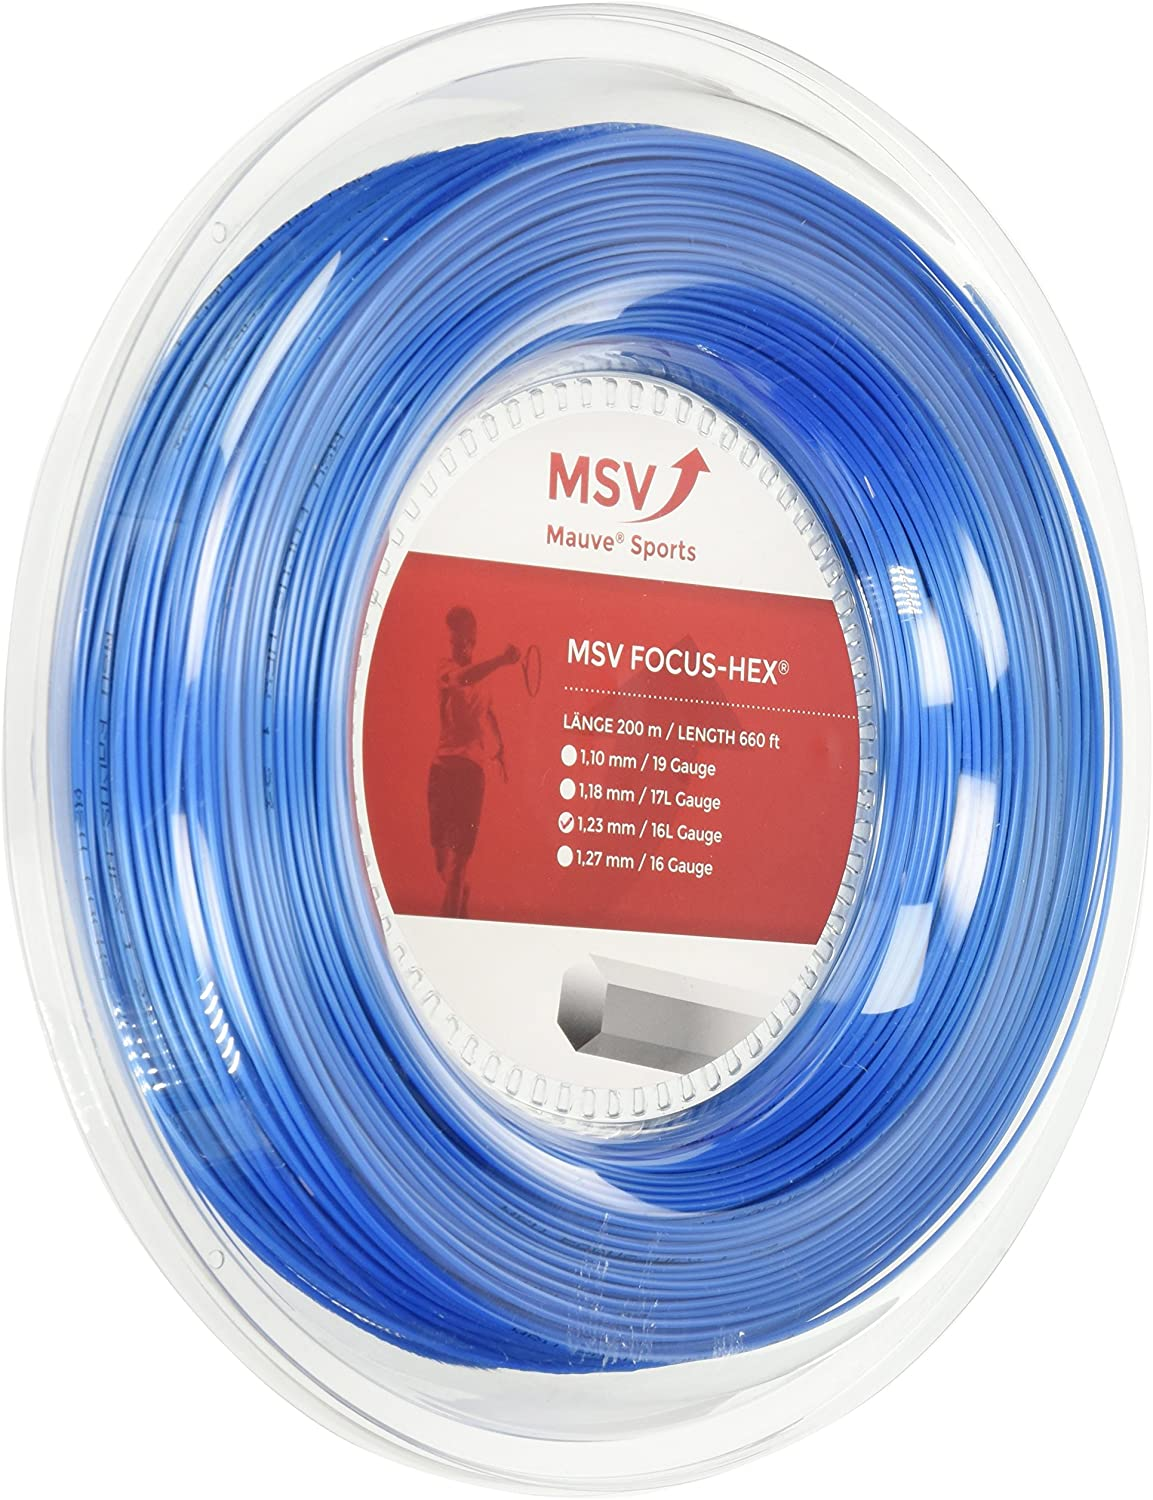 MSV Focus HEX Discount mail order 16L 1.23mm Online limited product Sky 200m Tennis Strin Blue 660ft Reel